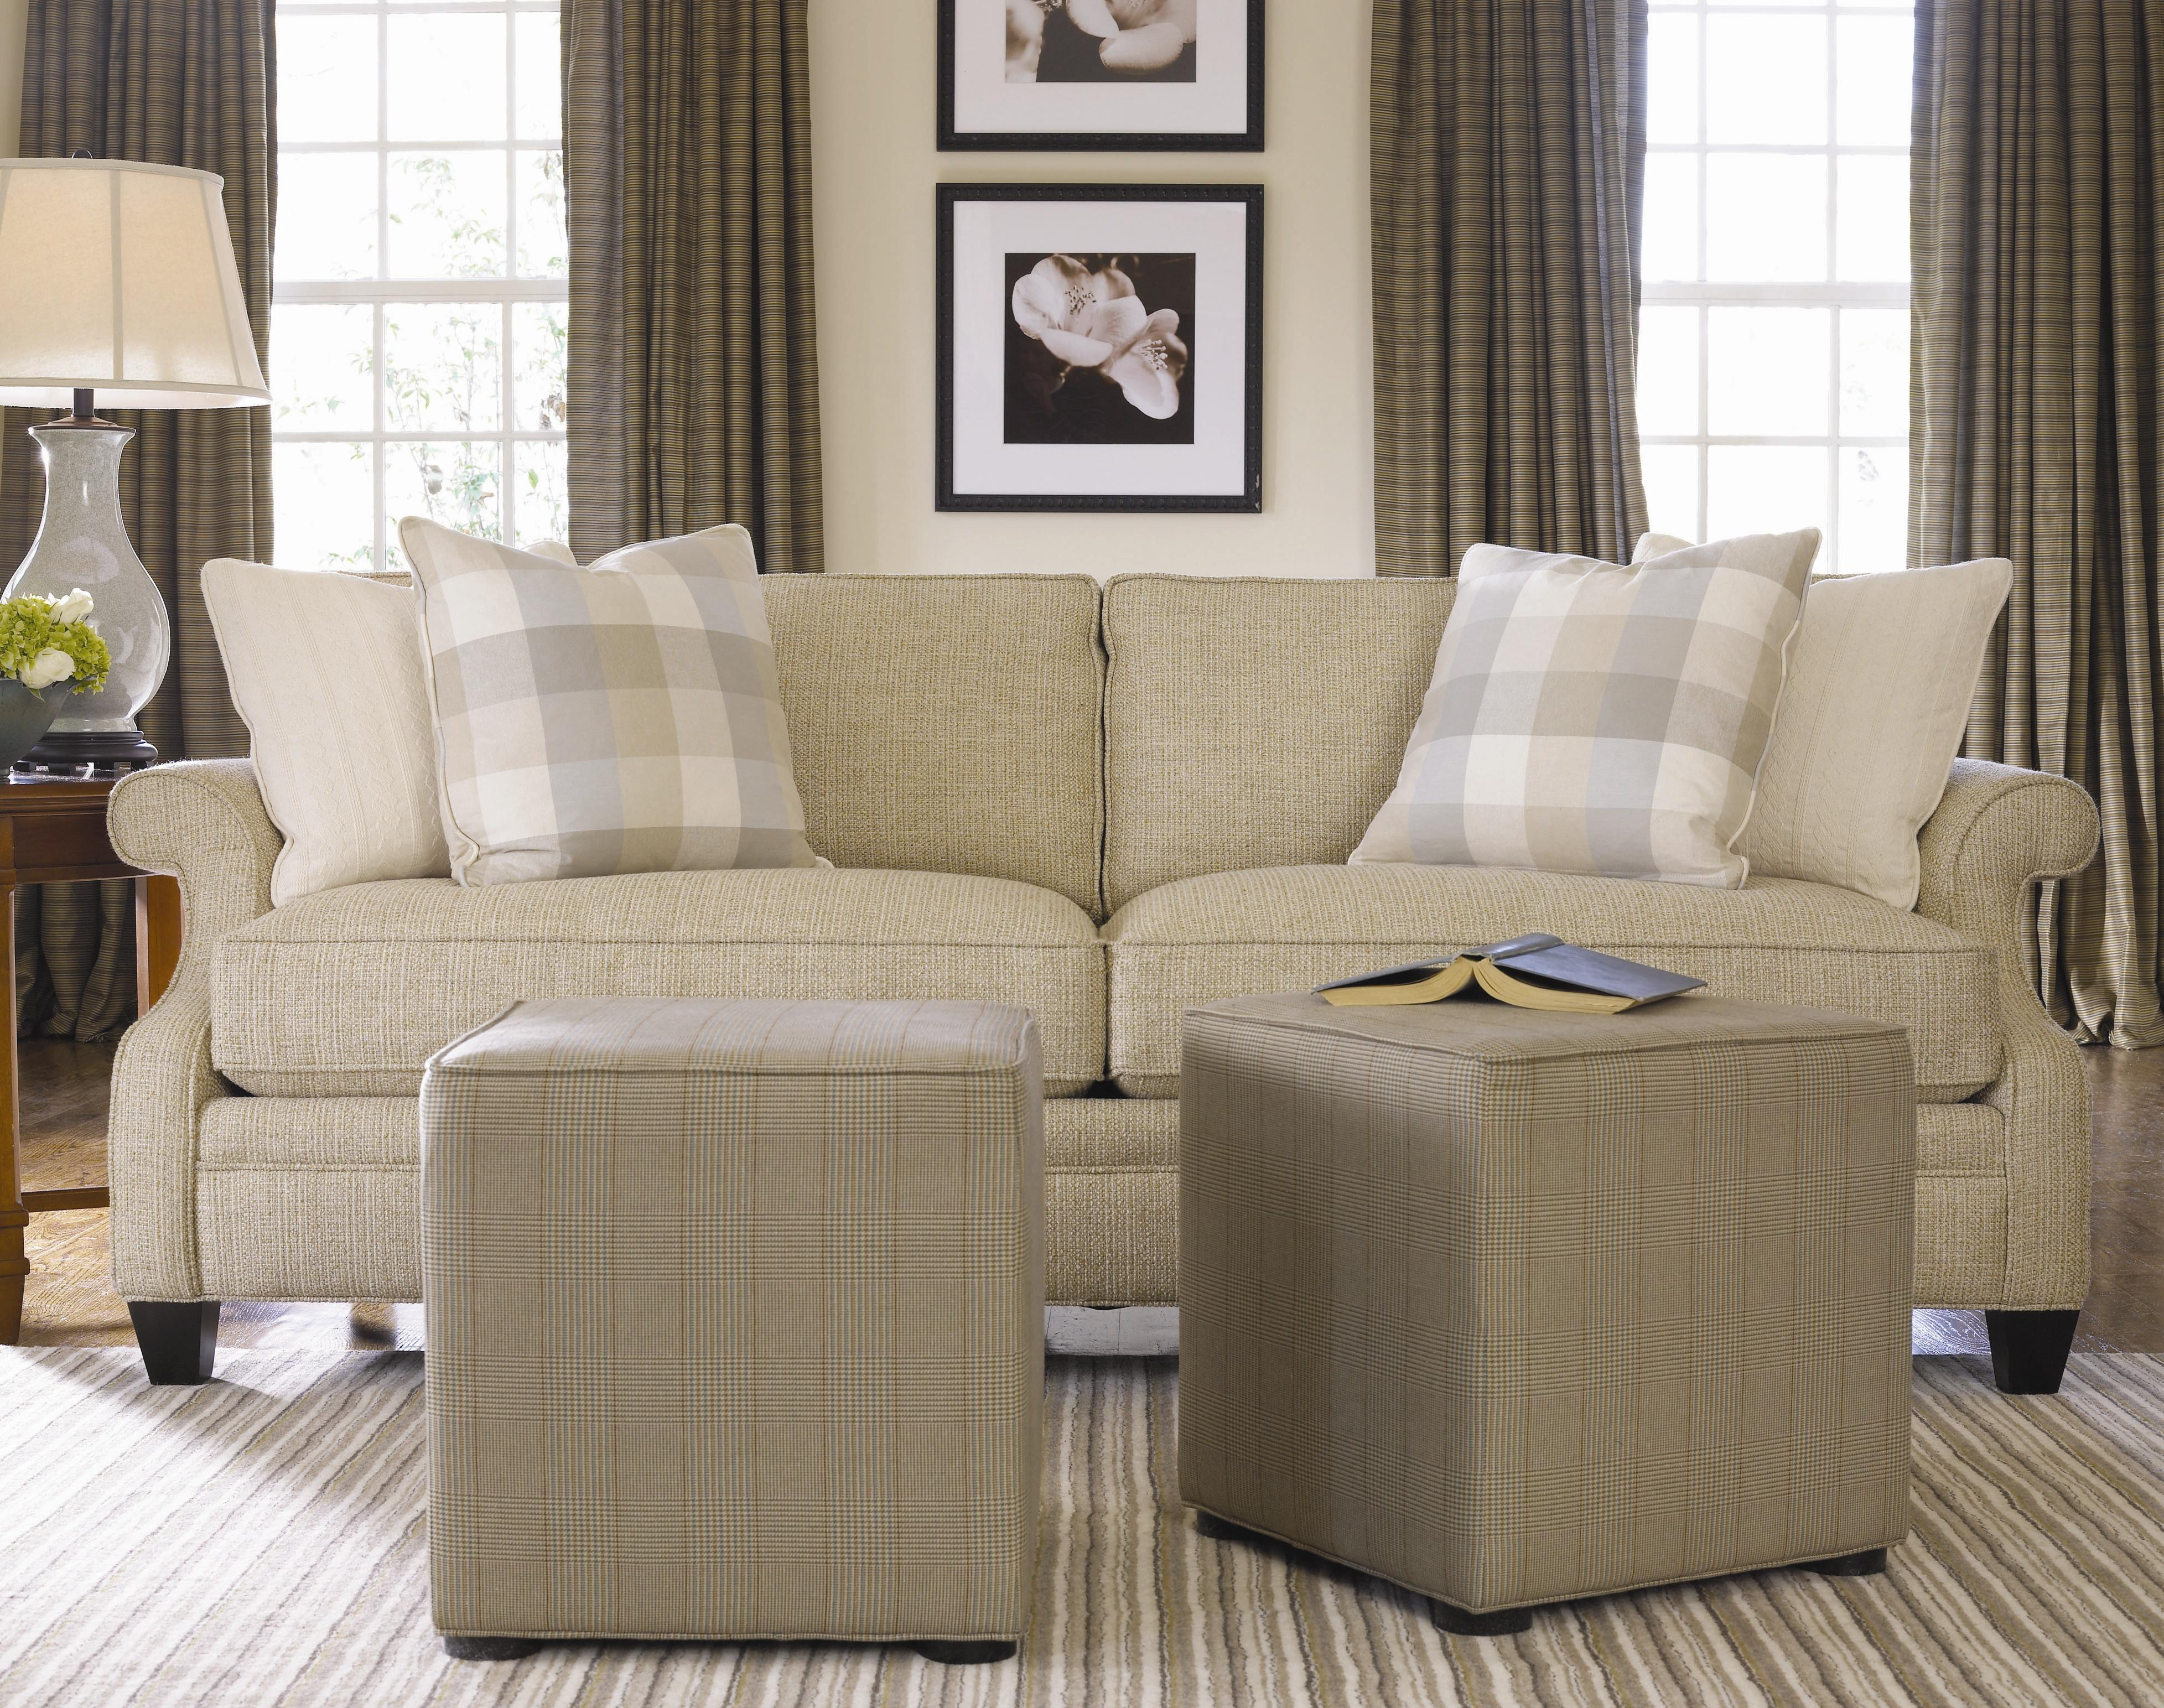 Thomasville Living Room Furniture Thomasvillear Mercer Series Sectional With Panel Arms Adcock